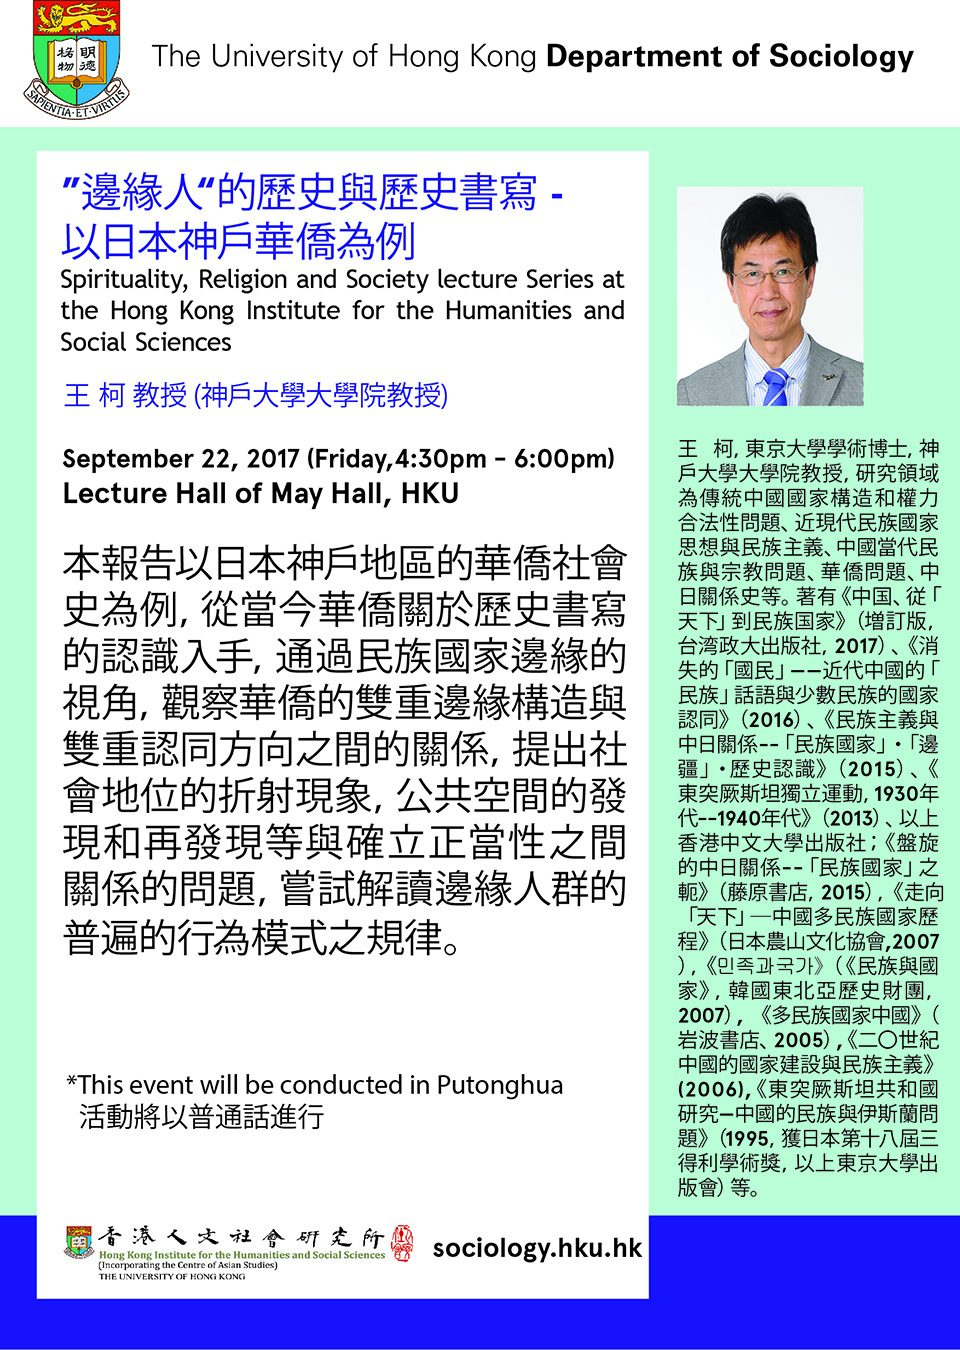 "Spirituality, Religion and Society Lecture Series ""「邊緣人」的歷史與歷史書寫—以日本神戶華僑為例"" by Professor Ke Wang (September 22, 2017)"